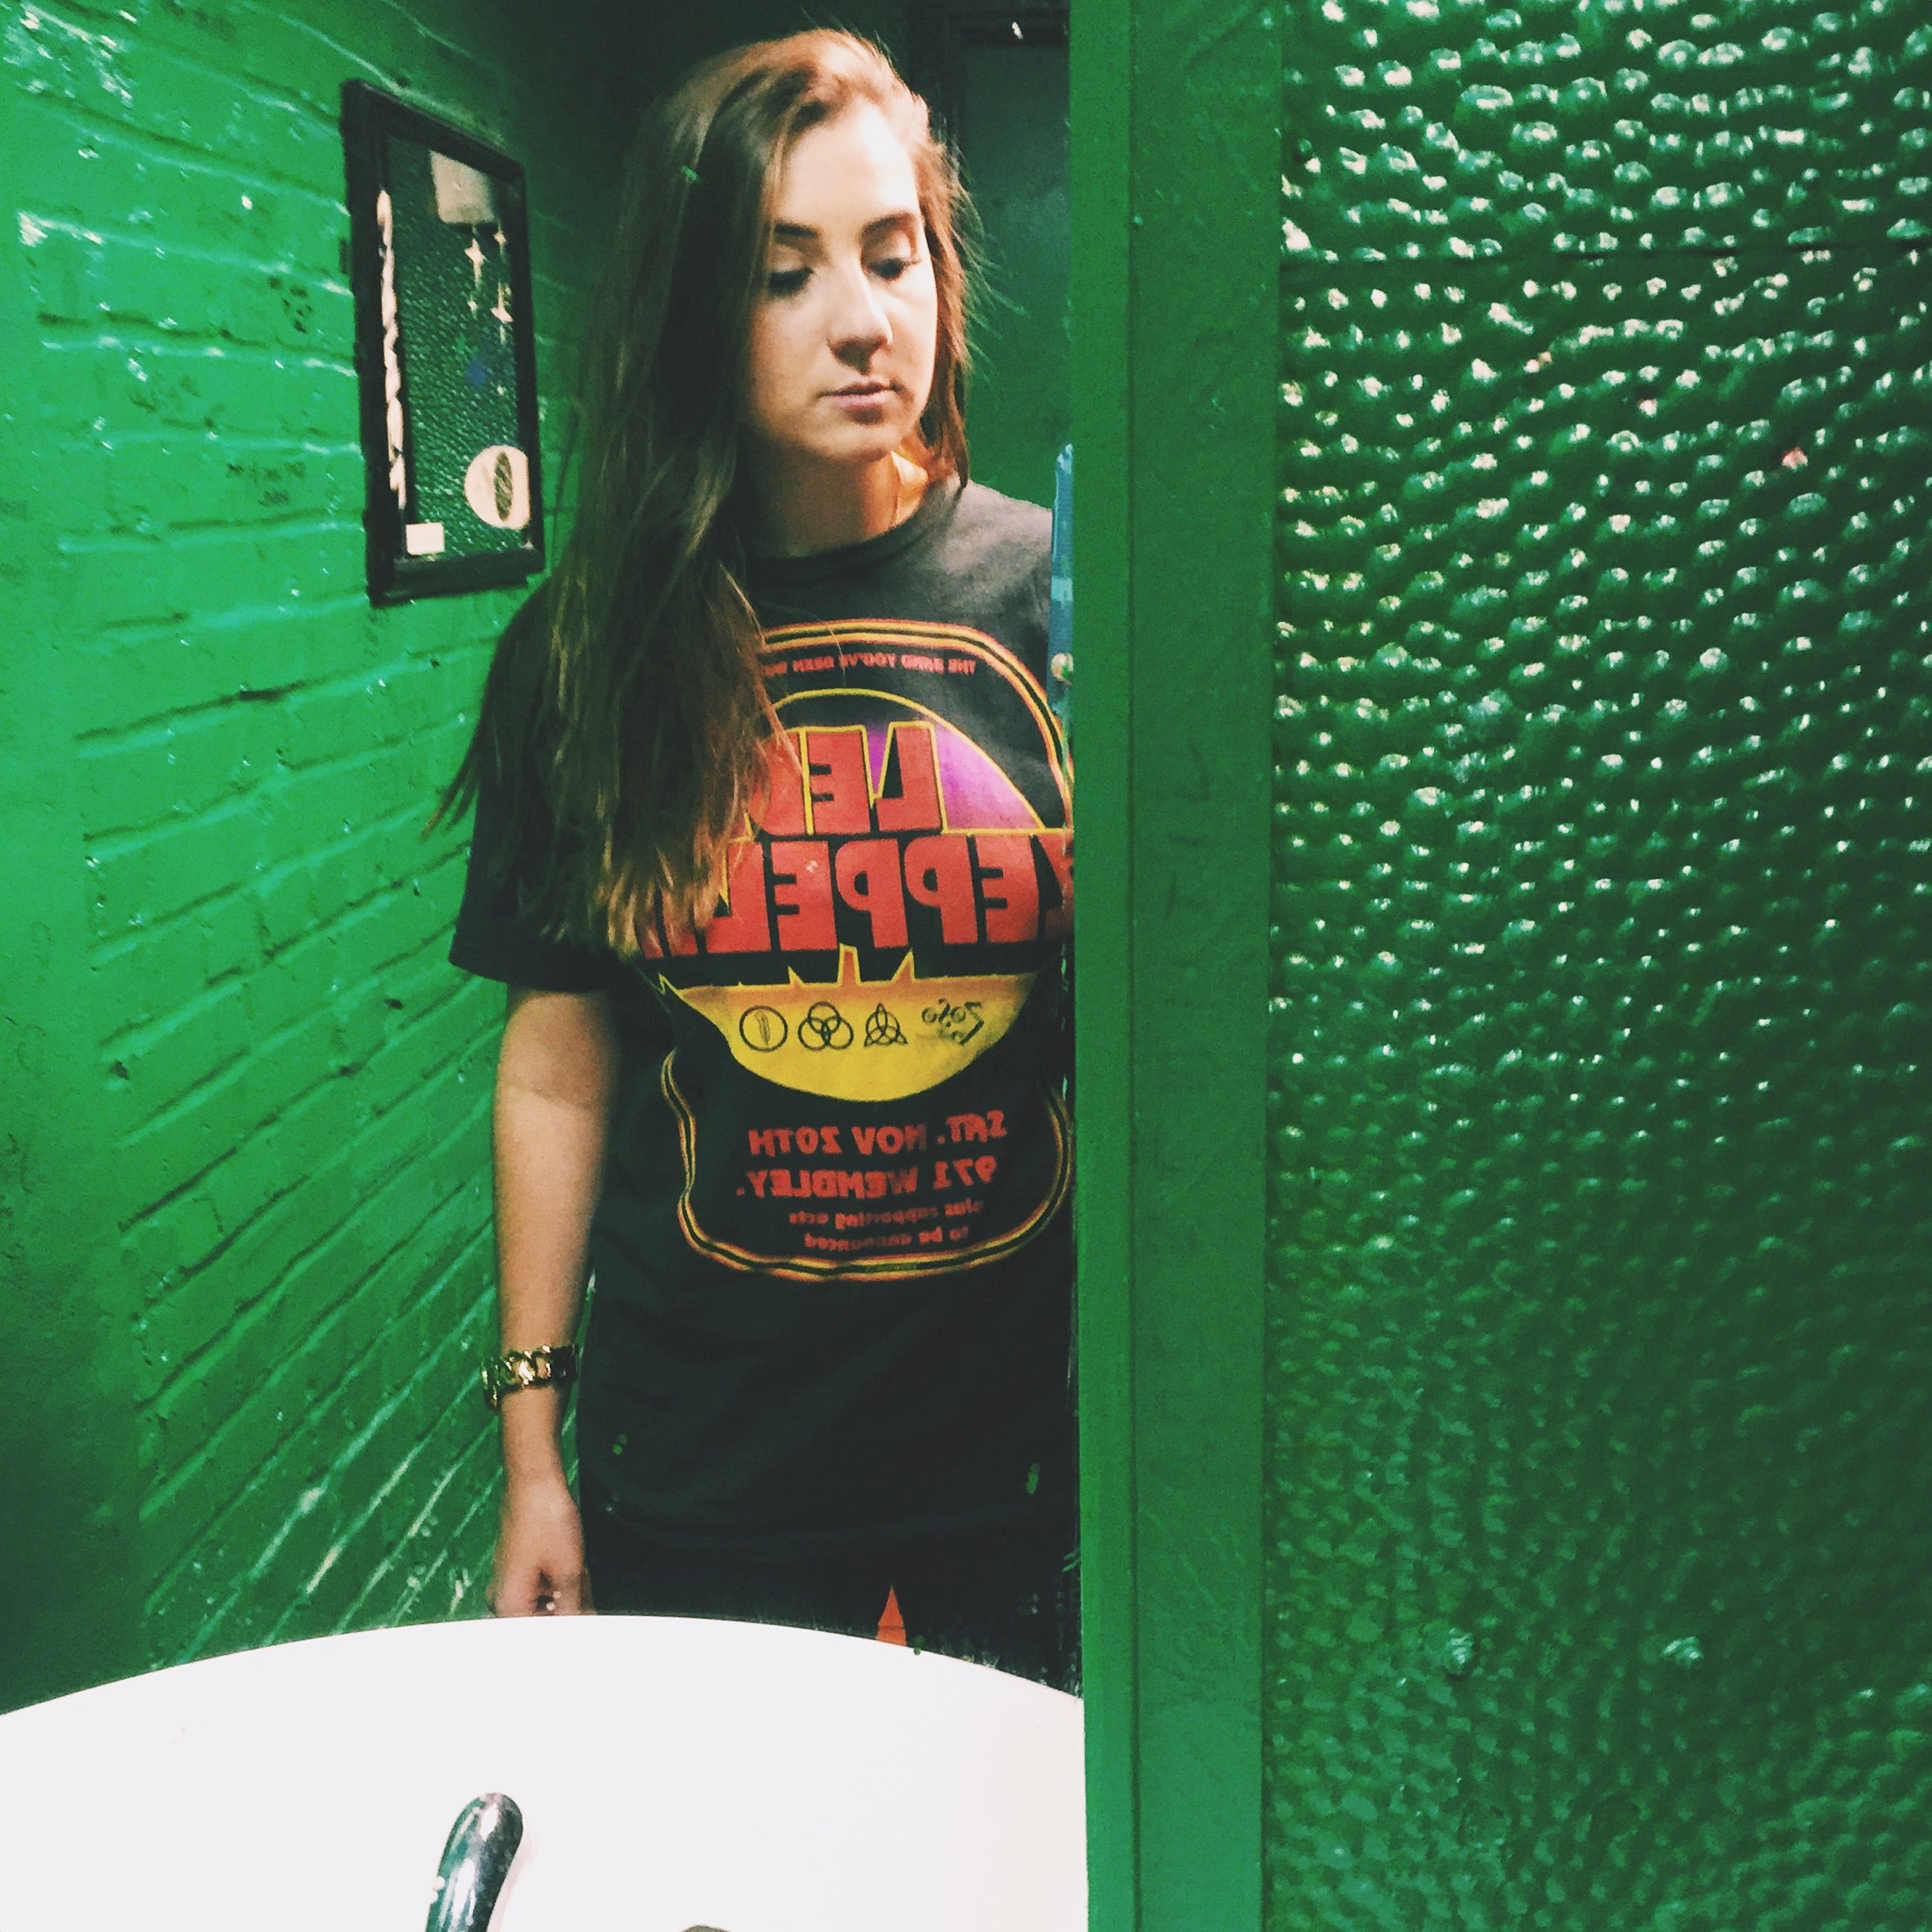 Bathroom obsessions pt. 3